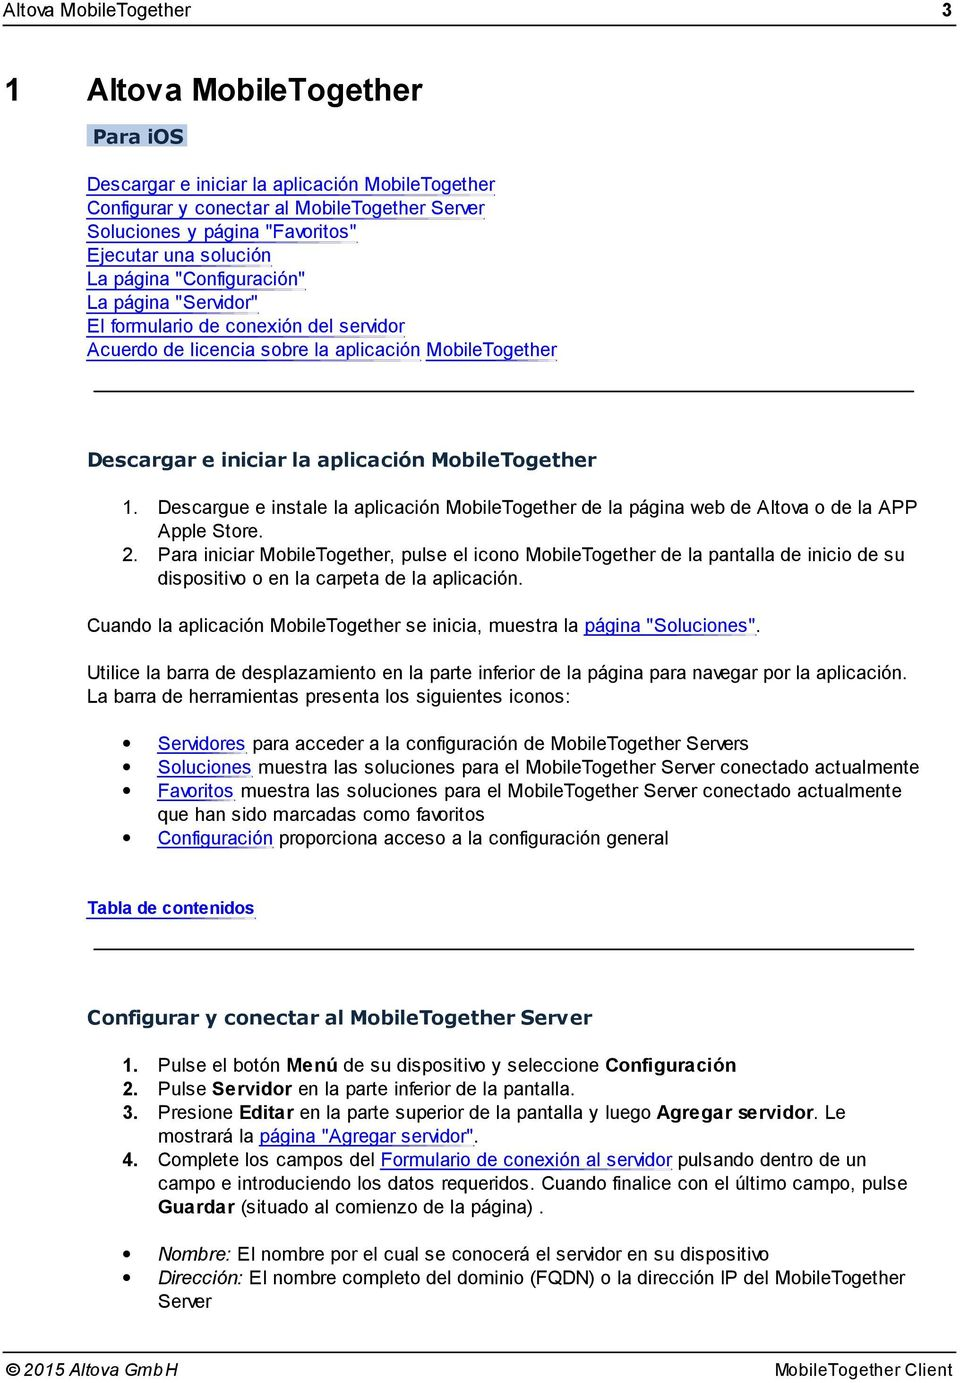 1. Descargue e instale la aplicación MobileTogether de la página web de Altova o de la APP Apple Store. 2.